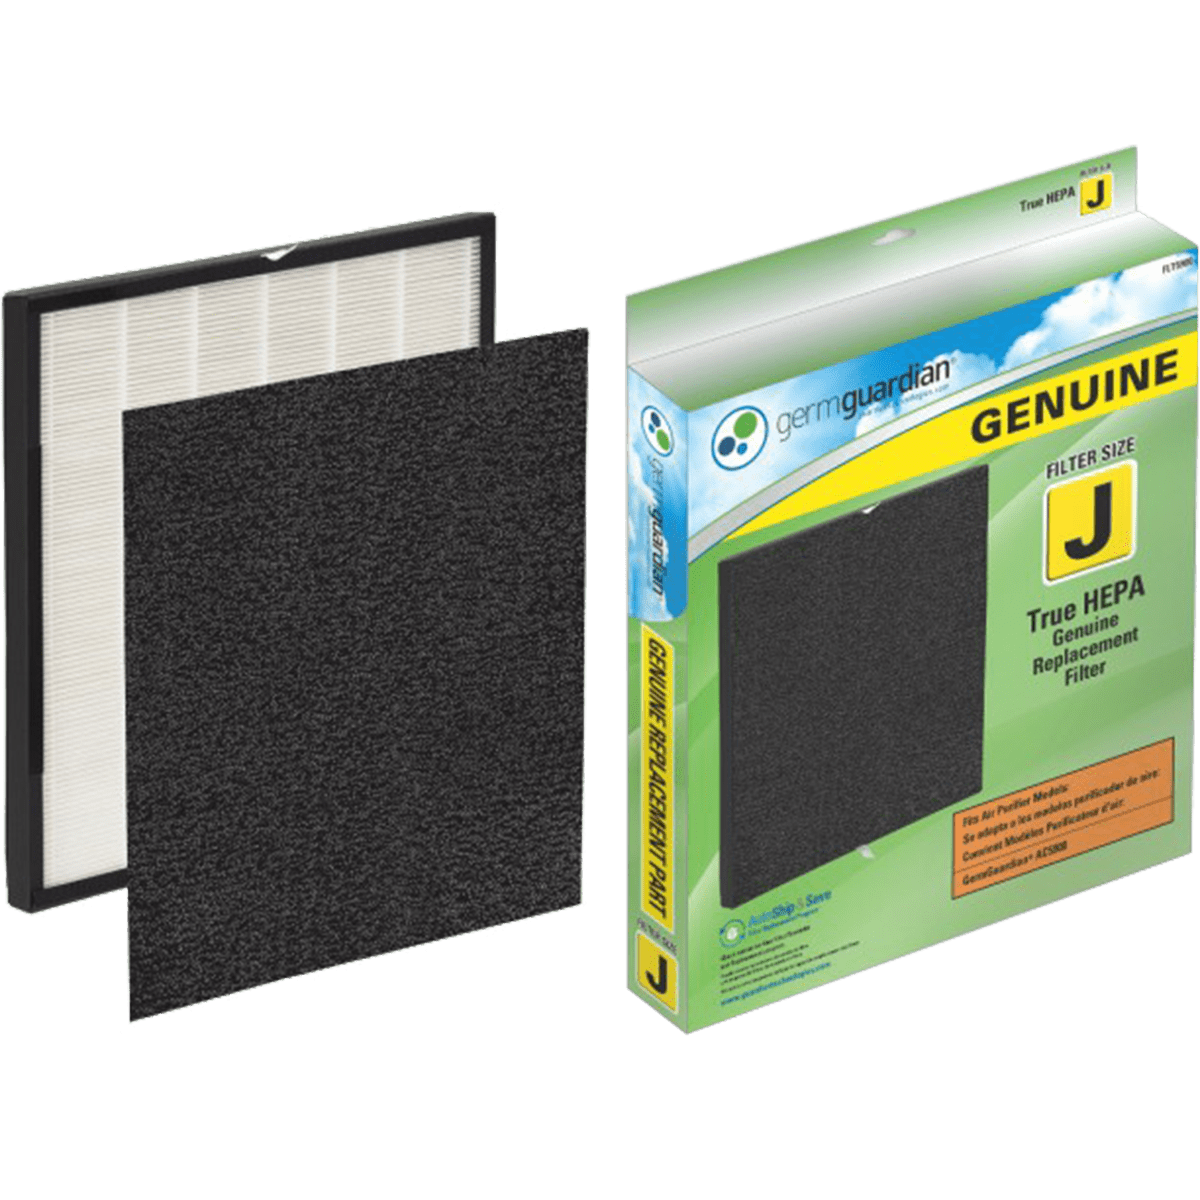 GermGuardian FLT5900 True HEPA  Filter J ge7102